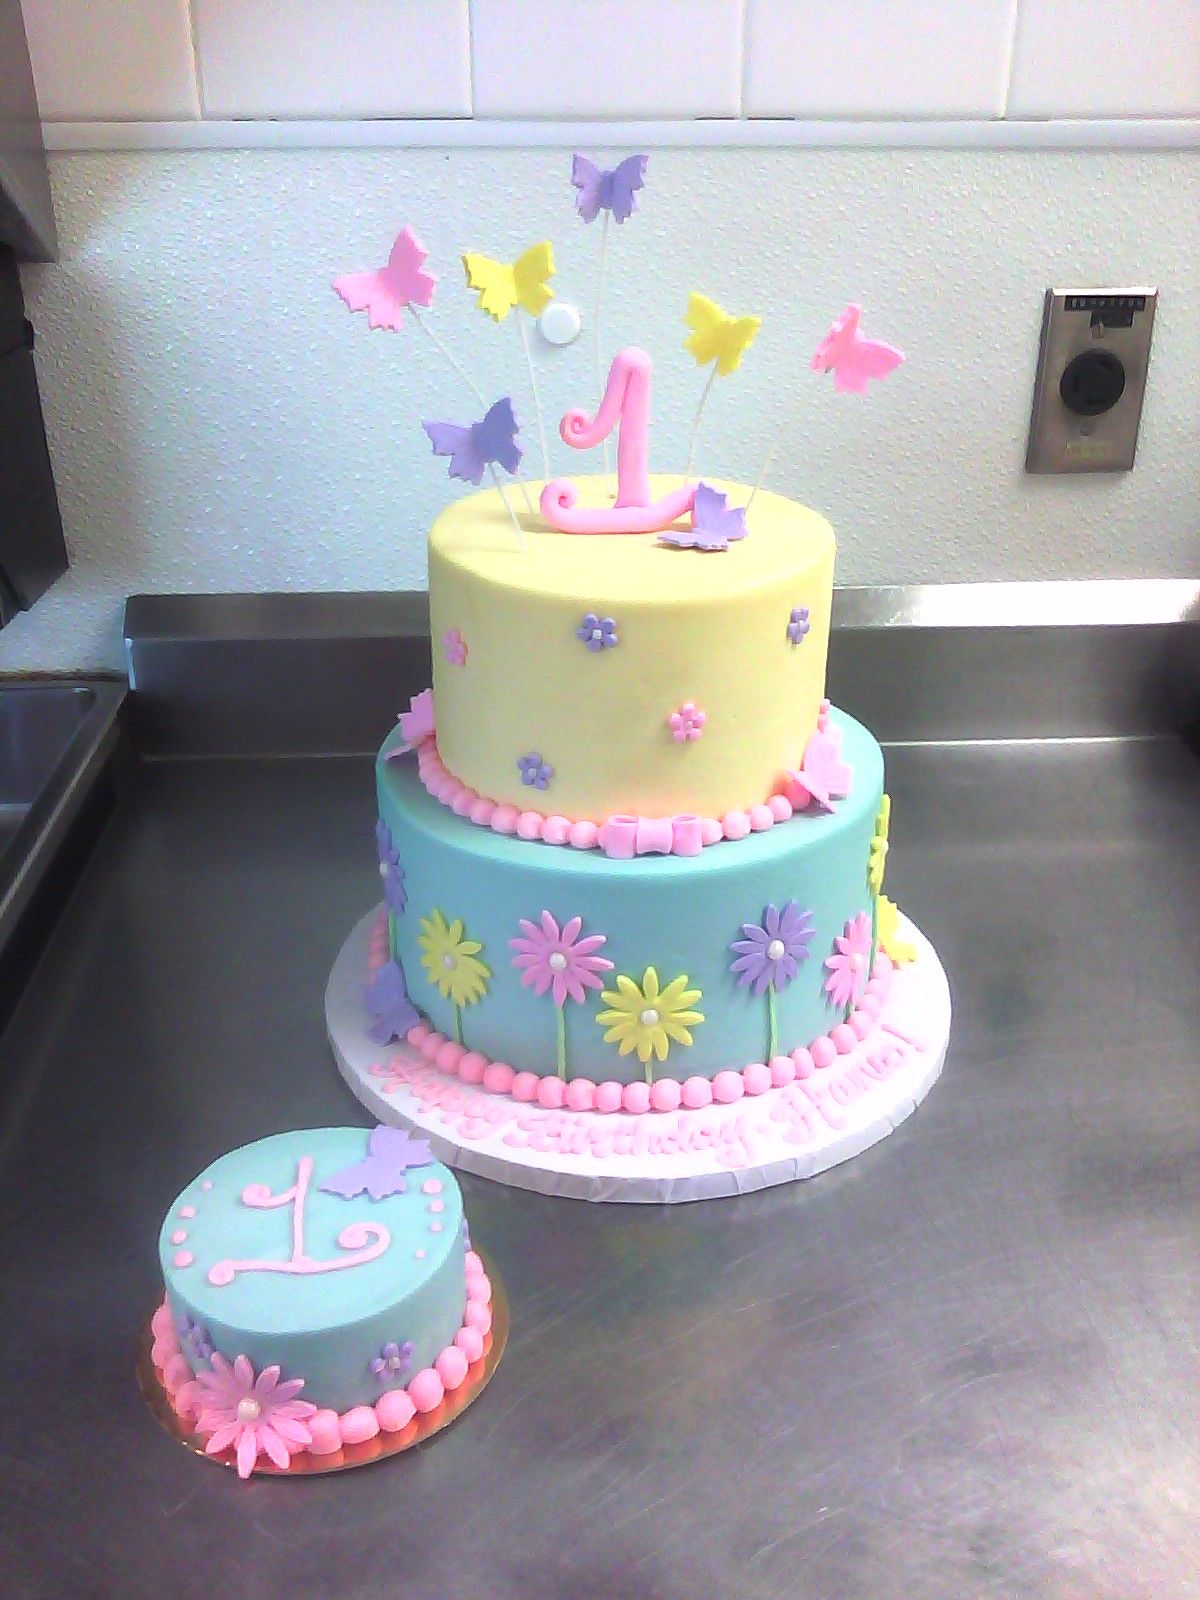 1st Birthday Cake With Butterflies Flowers Cakes And Cupcakes